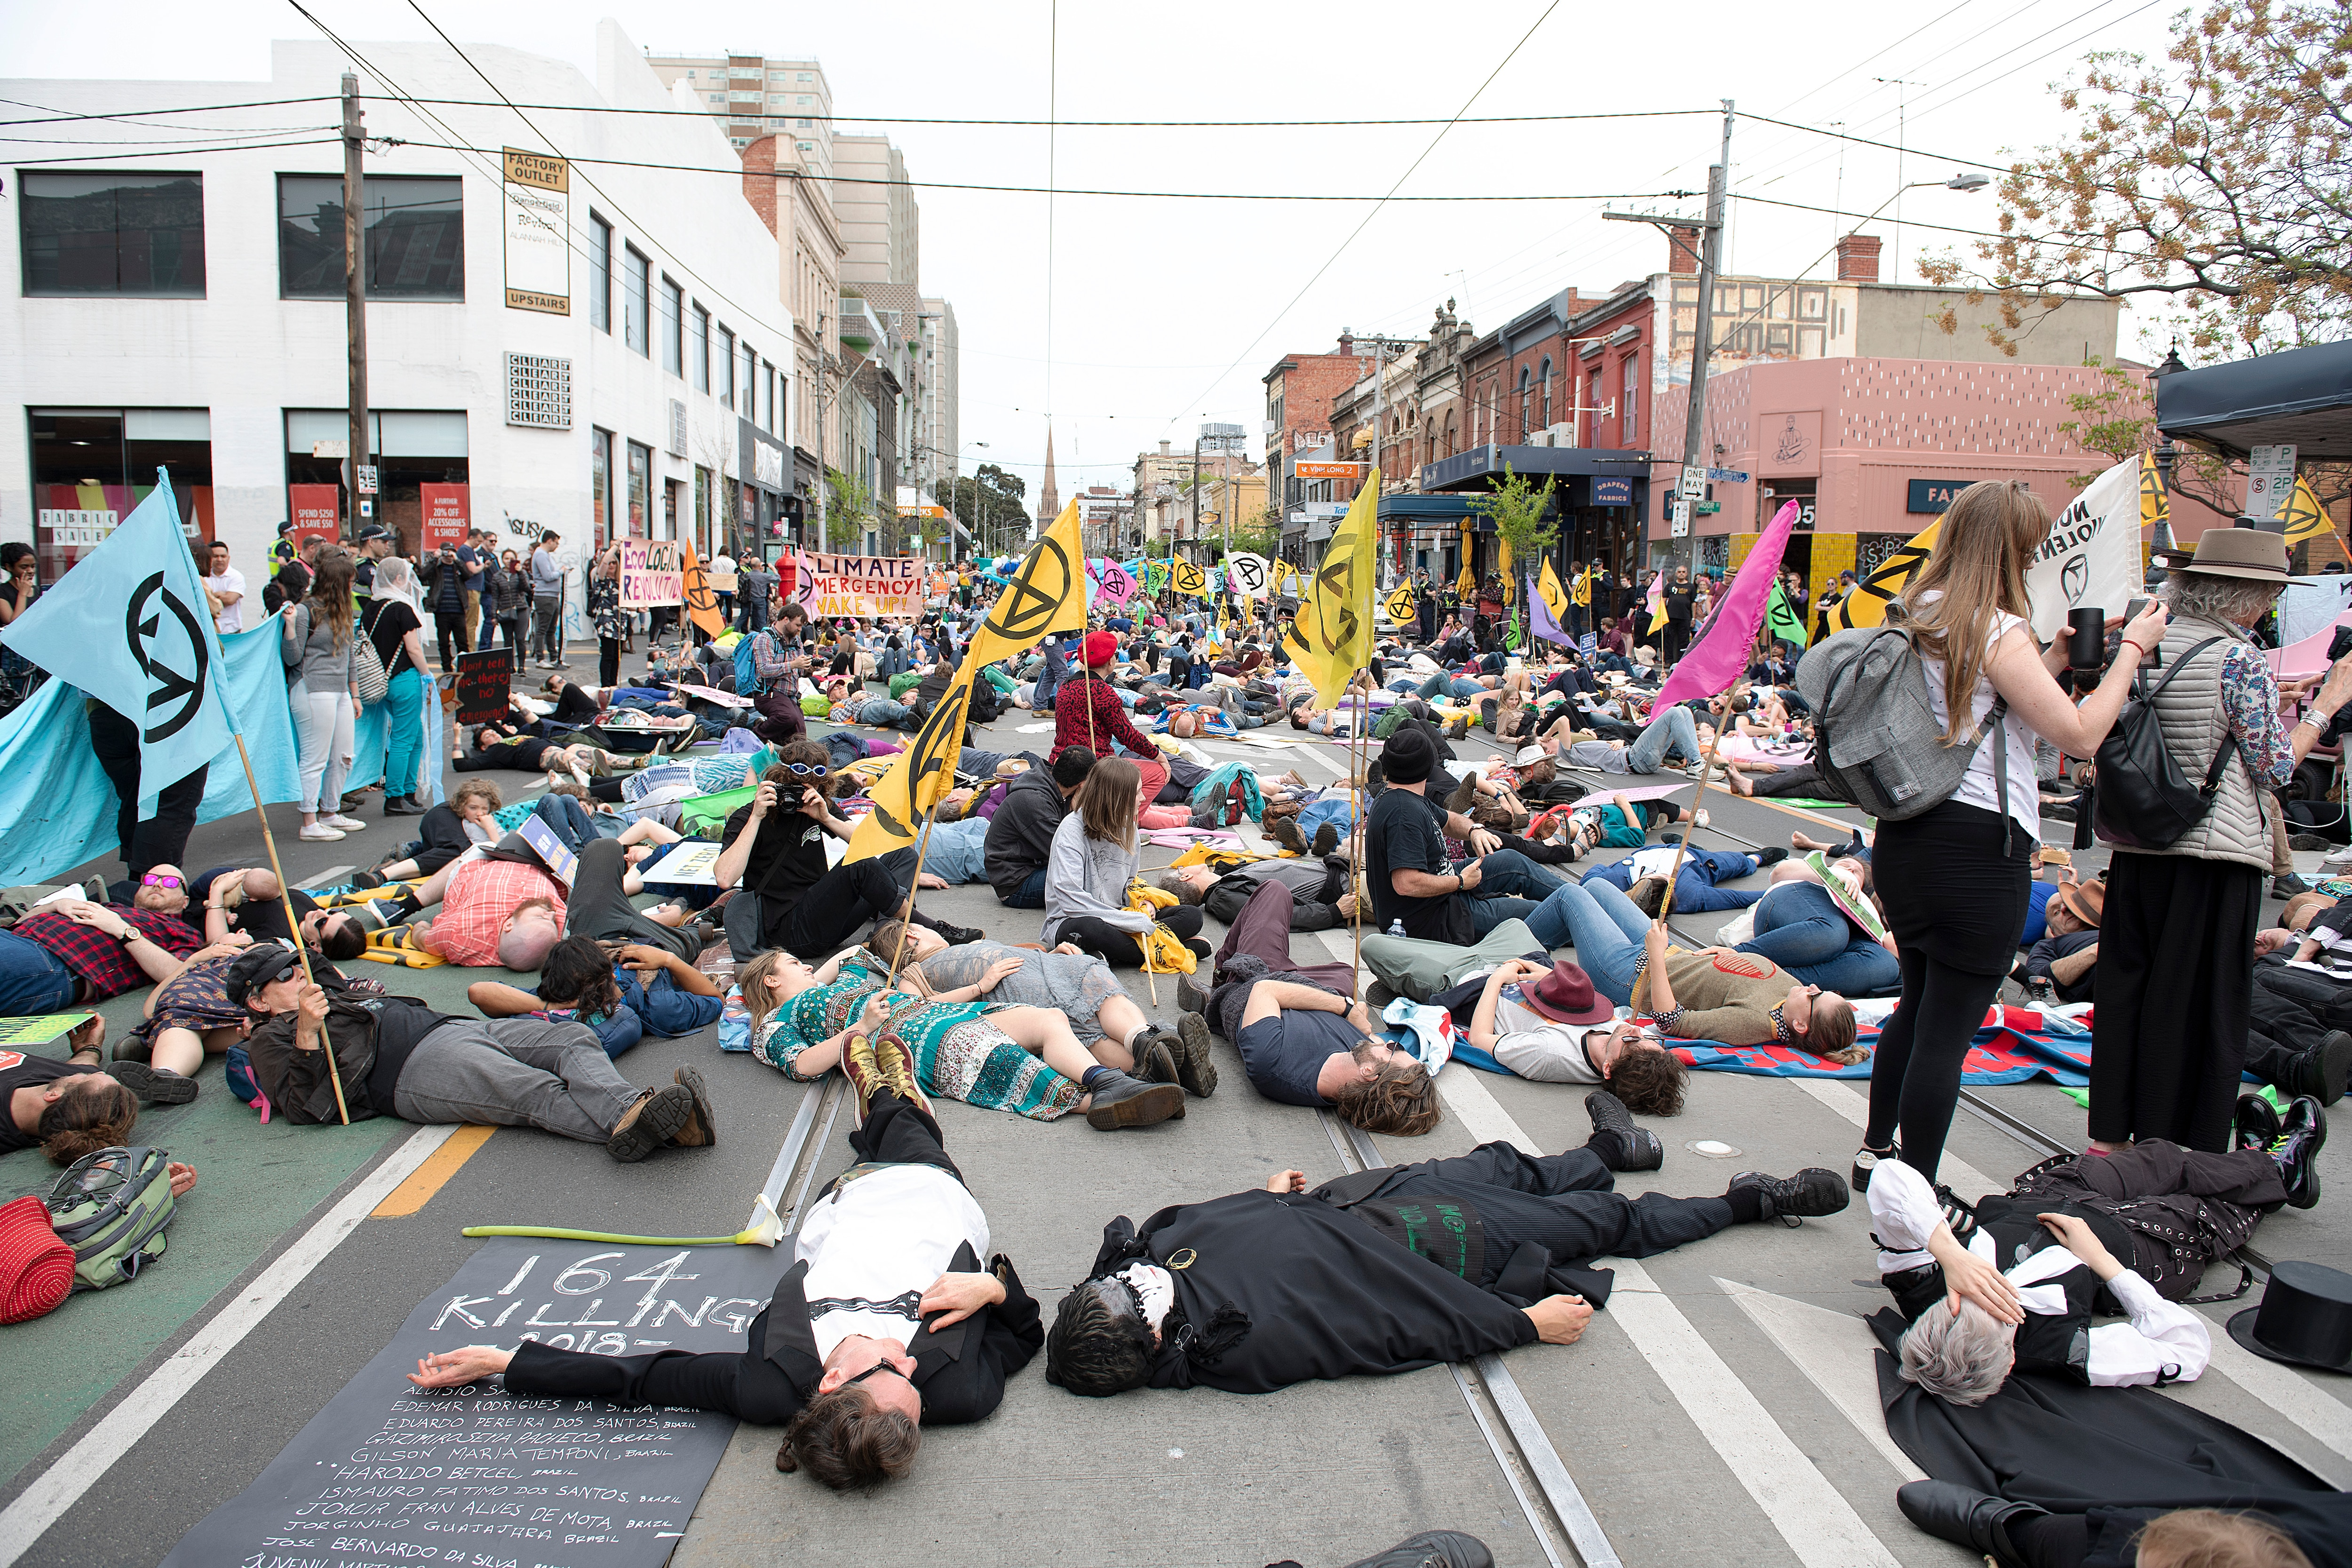 Extinction Rebellion activists lie down on the road.